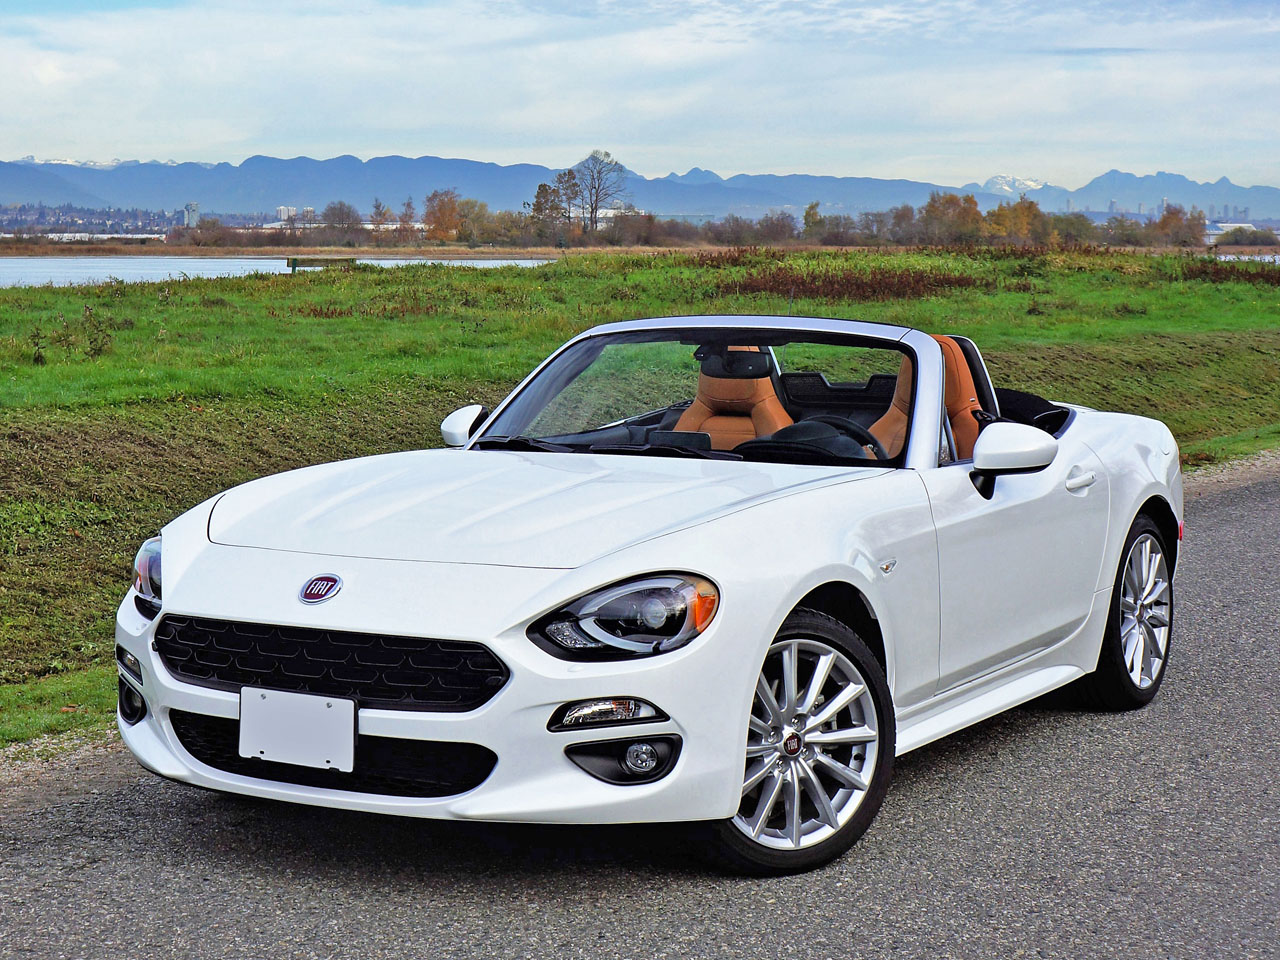 2017 fiat 124 spider lusso road test carcostcanada for Fiat 124 spider motor